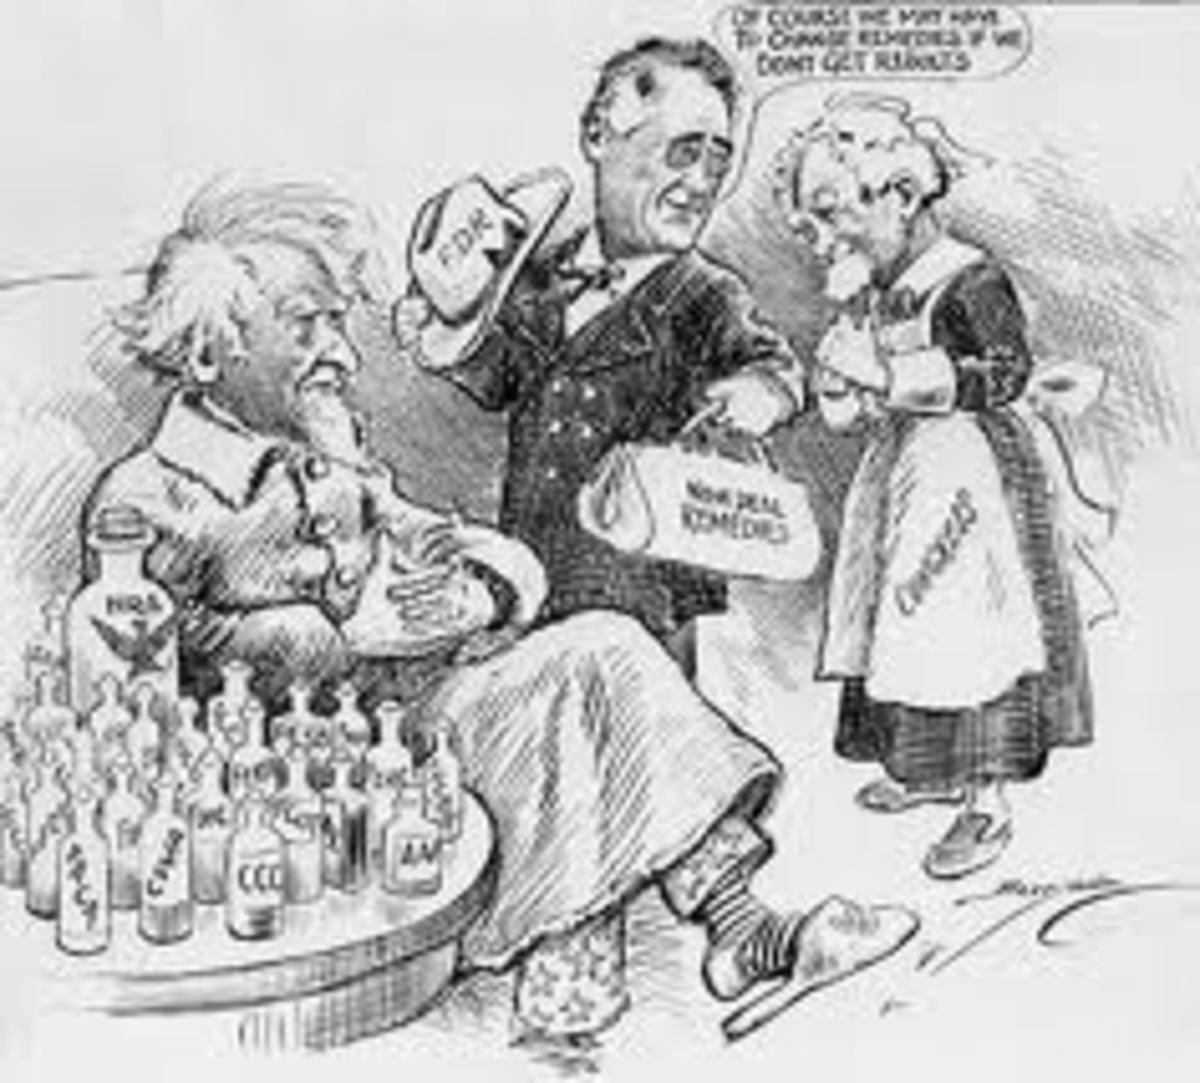 FDR's New deal prescriptions for Uncle Sam were bad medicine!